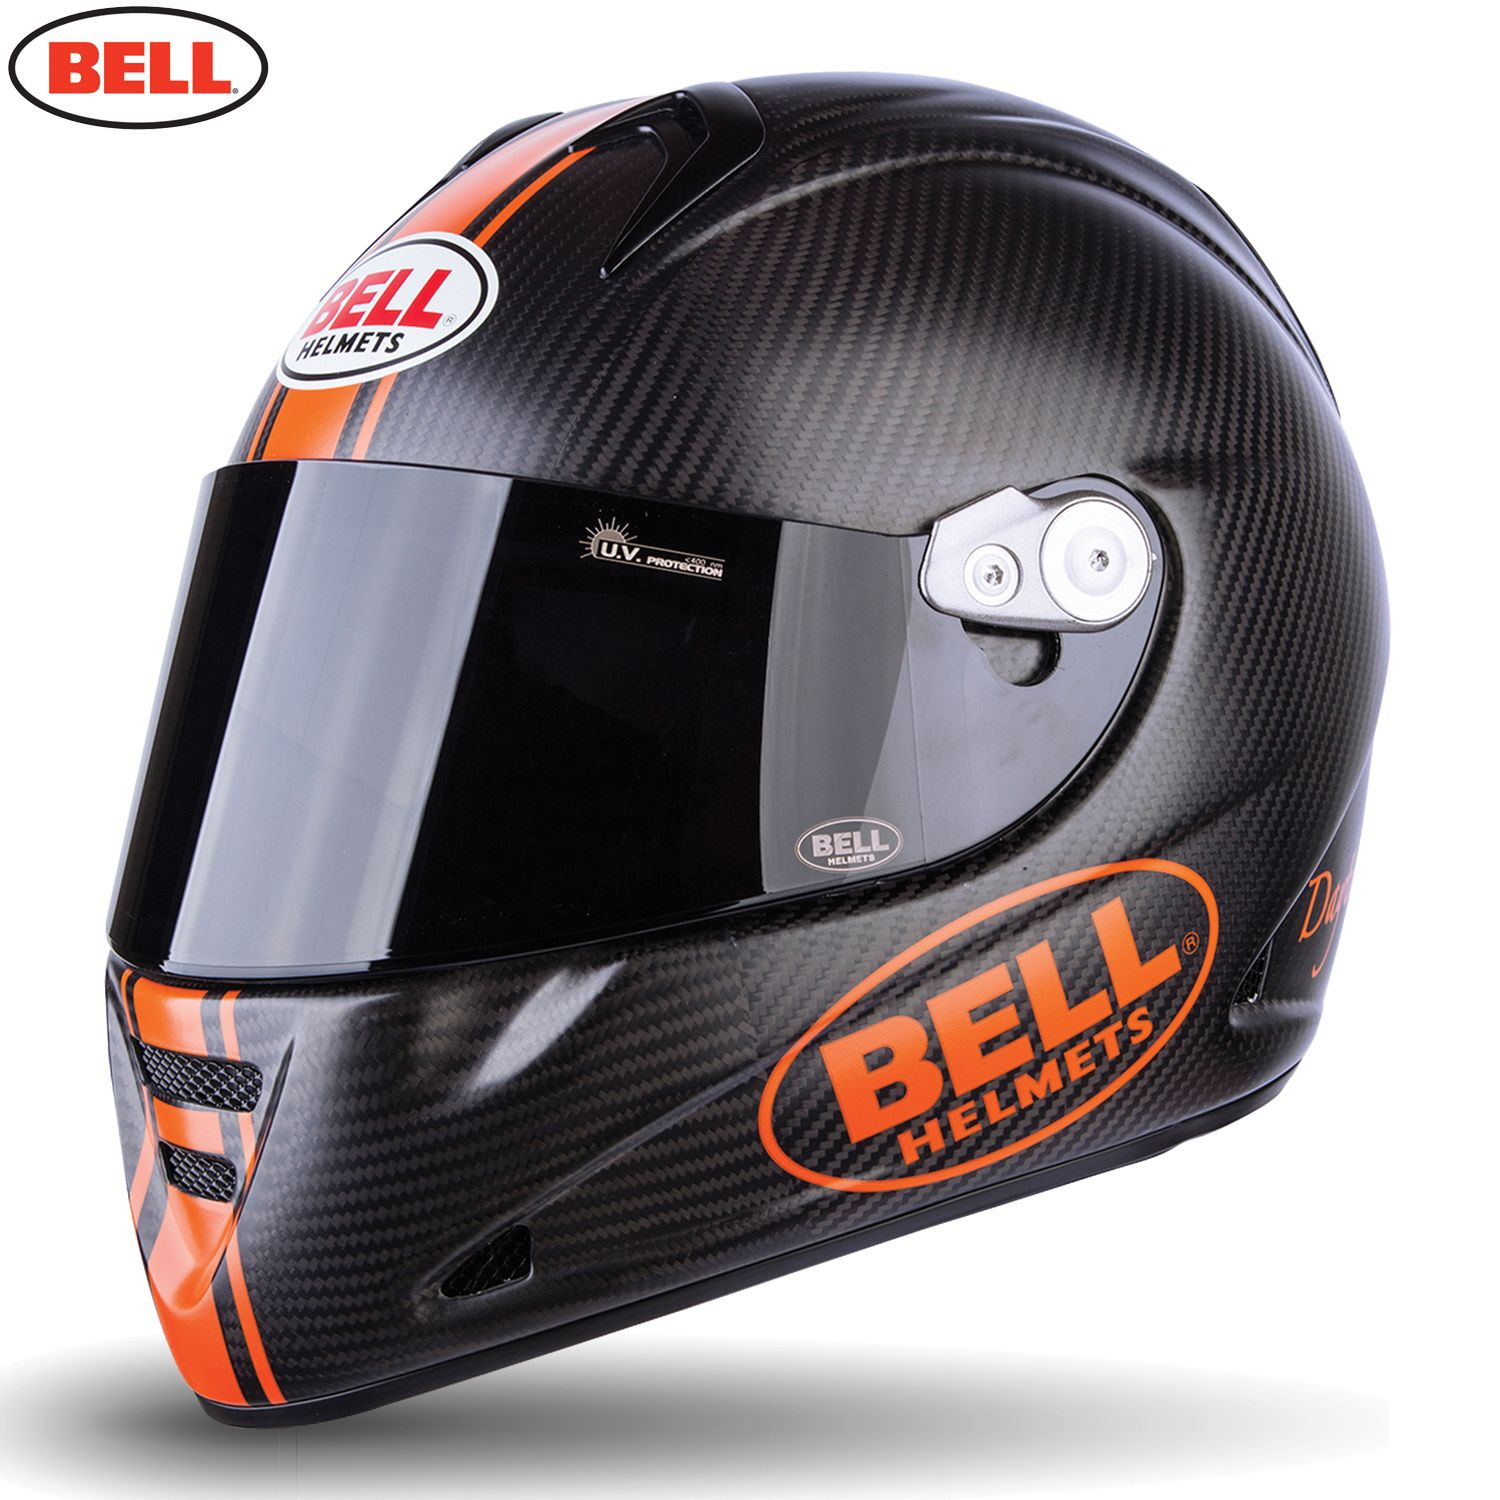 8ff8b517 Bell M5x Daytona Motorcycle Helmet - Black Orange - Bell M5x Motorcycle  Helmet…